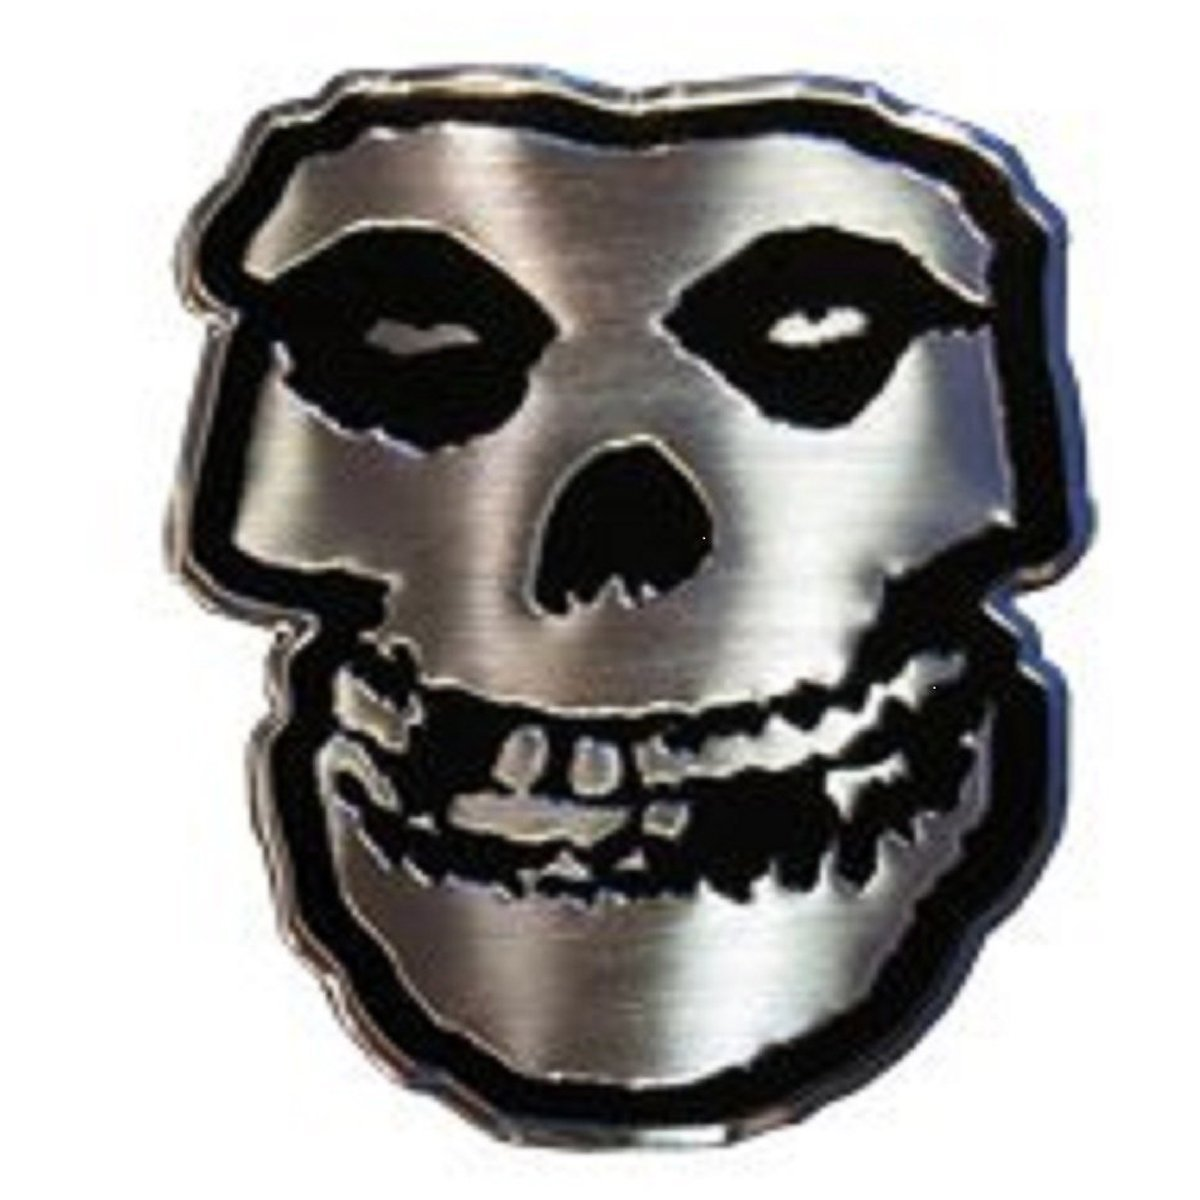 The Misfits Skull in Silver STICKER, Original Licensed Symbol on Embossed METAL STICKER - Small 1.125' Inches Original Licensed Symbol on Embossed METAL STICKER - Small 1.125 Inches Officially Licensed & Trademarked Products S-7769-M